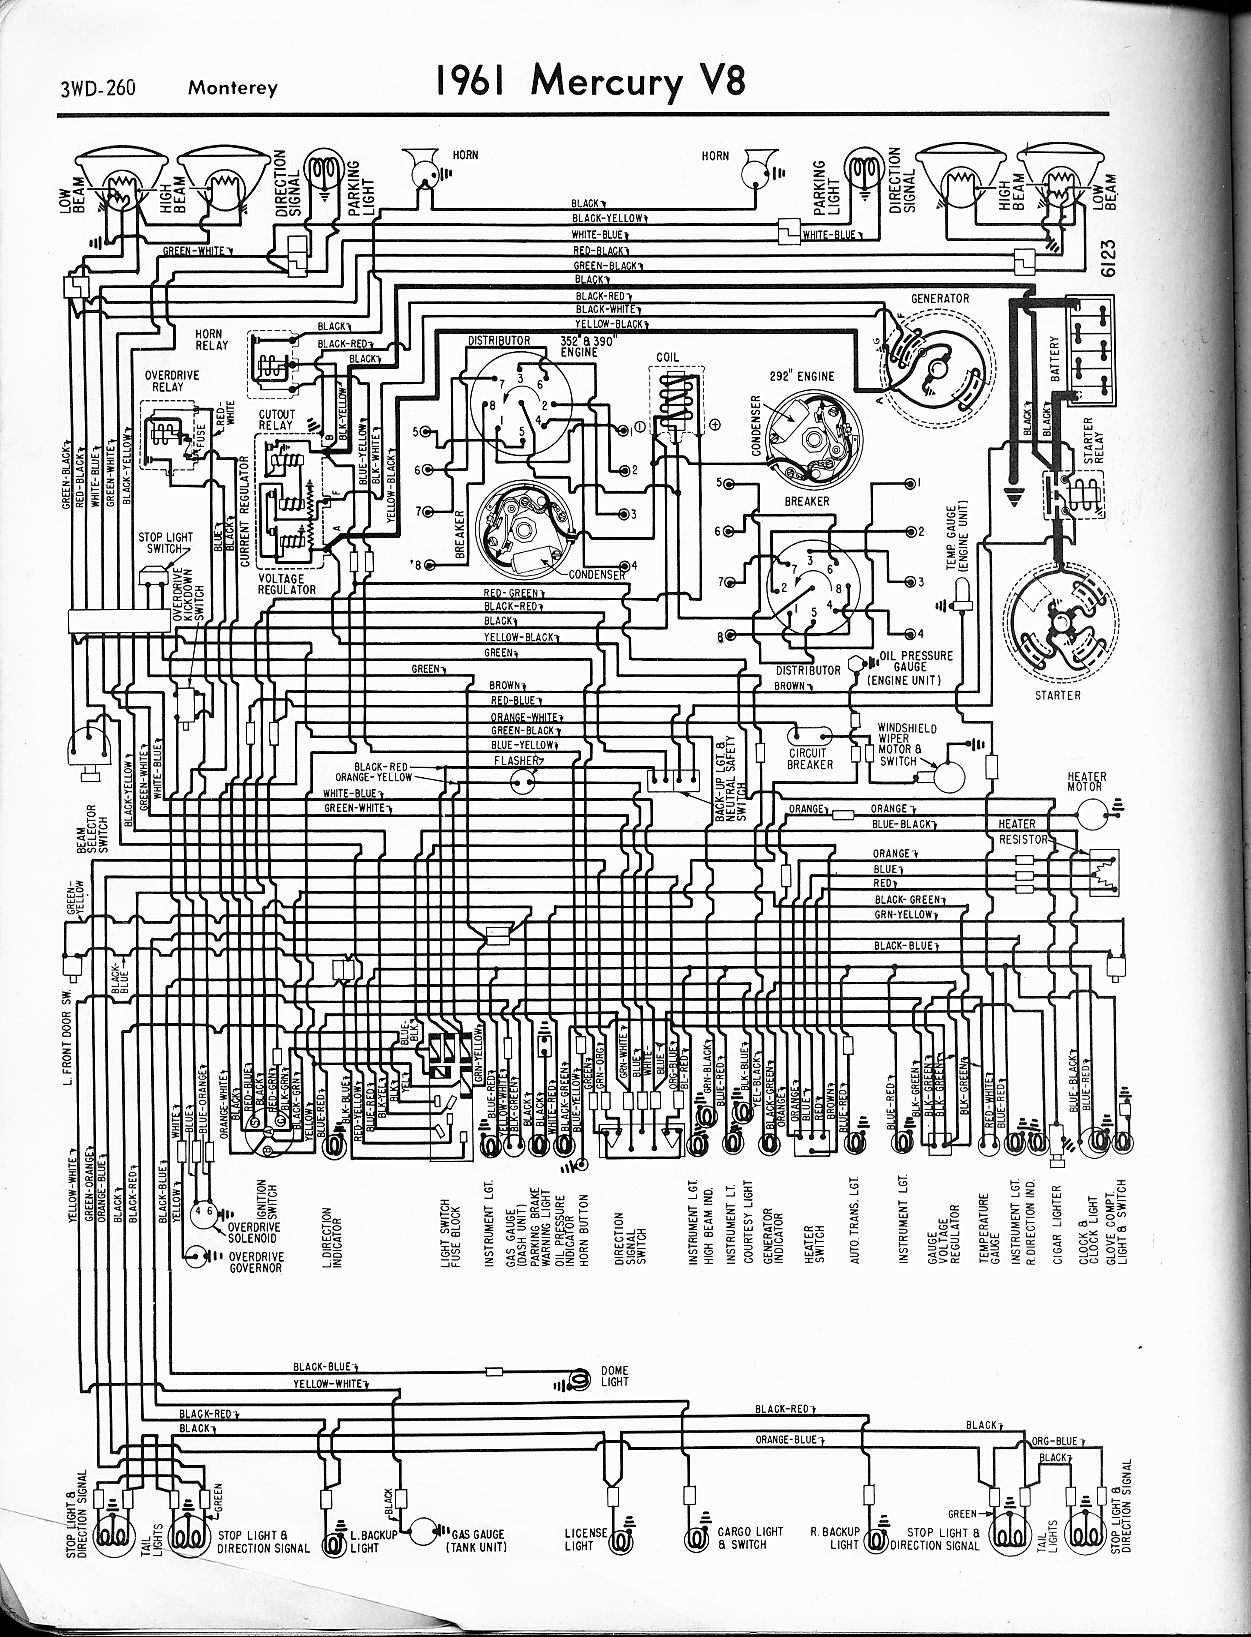 MWire5765 260 mercury wiring diagrams the old car manual project mercury 850 wiring diagram at honlapkeszites.co